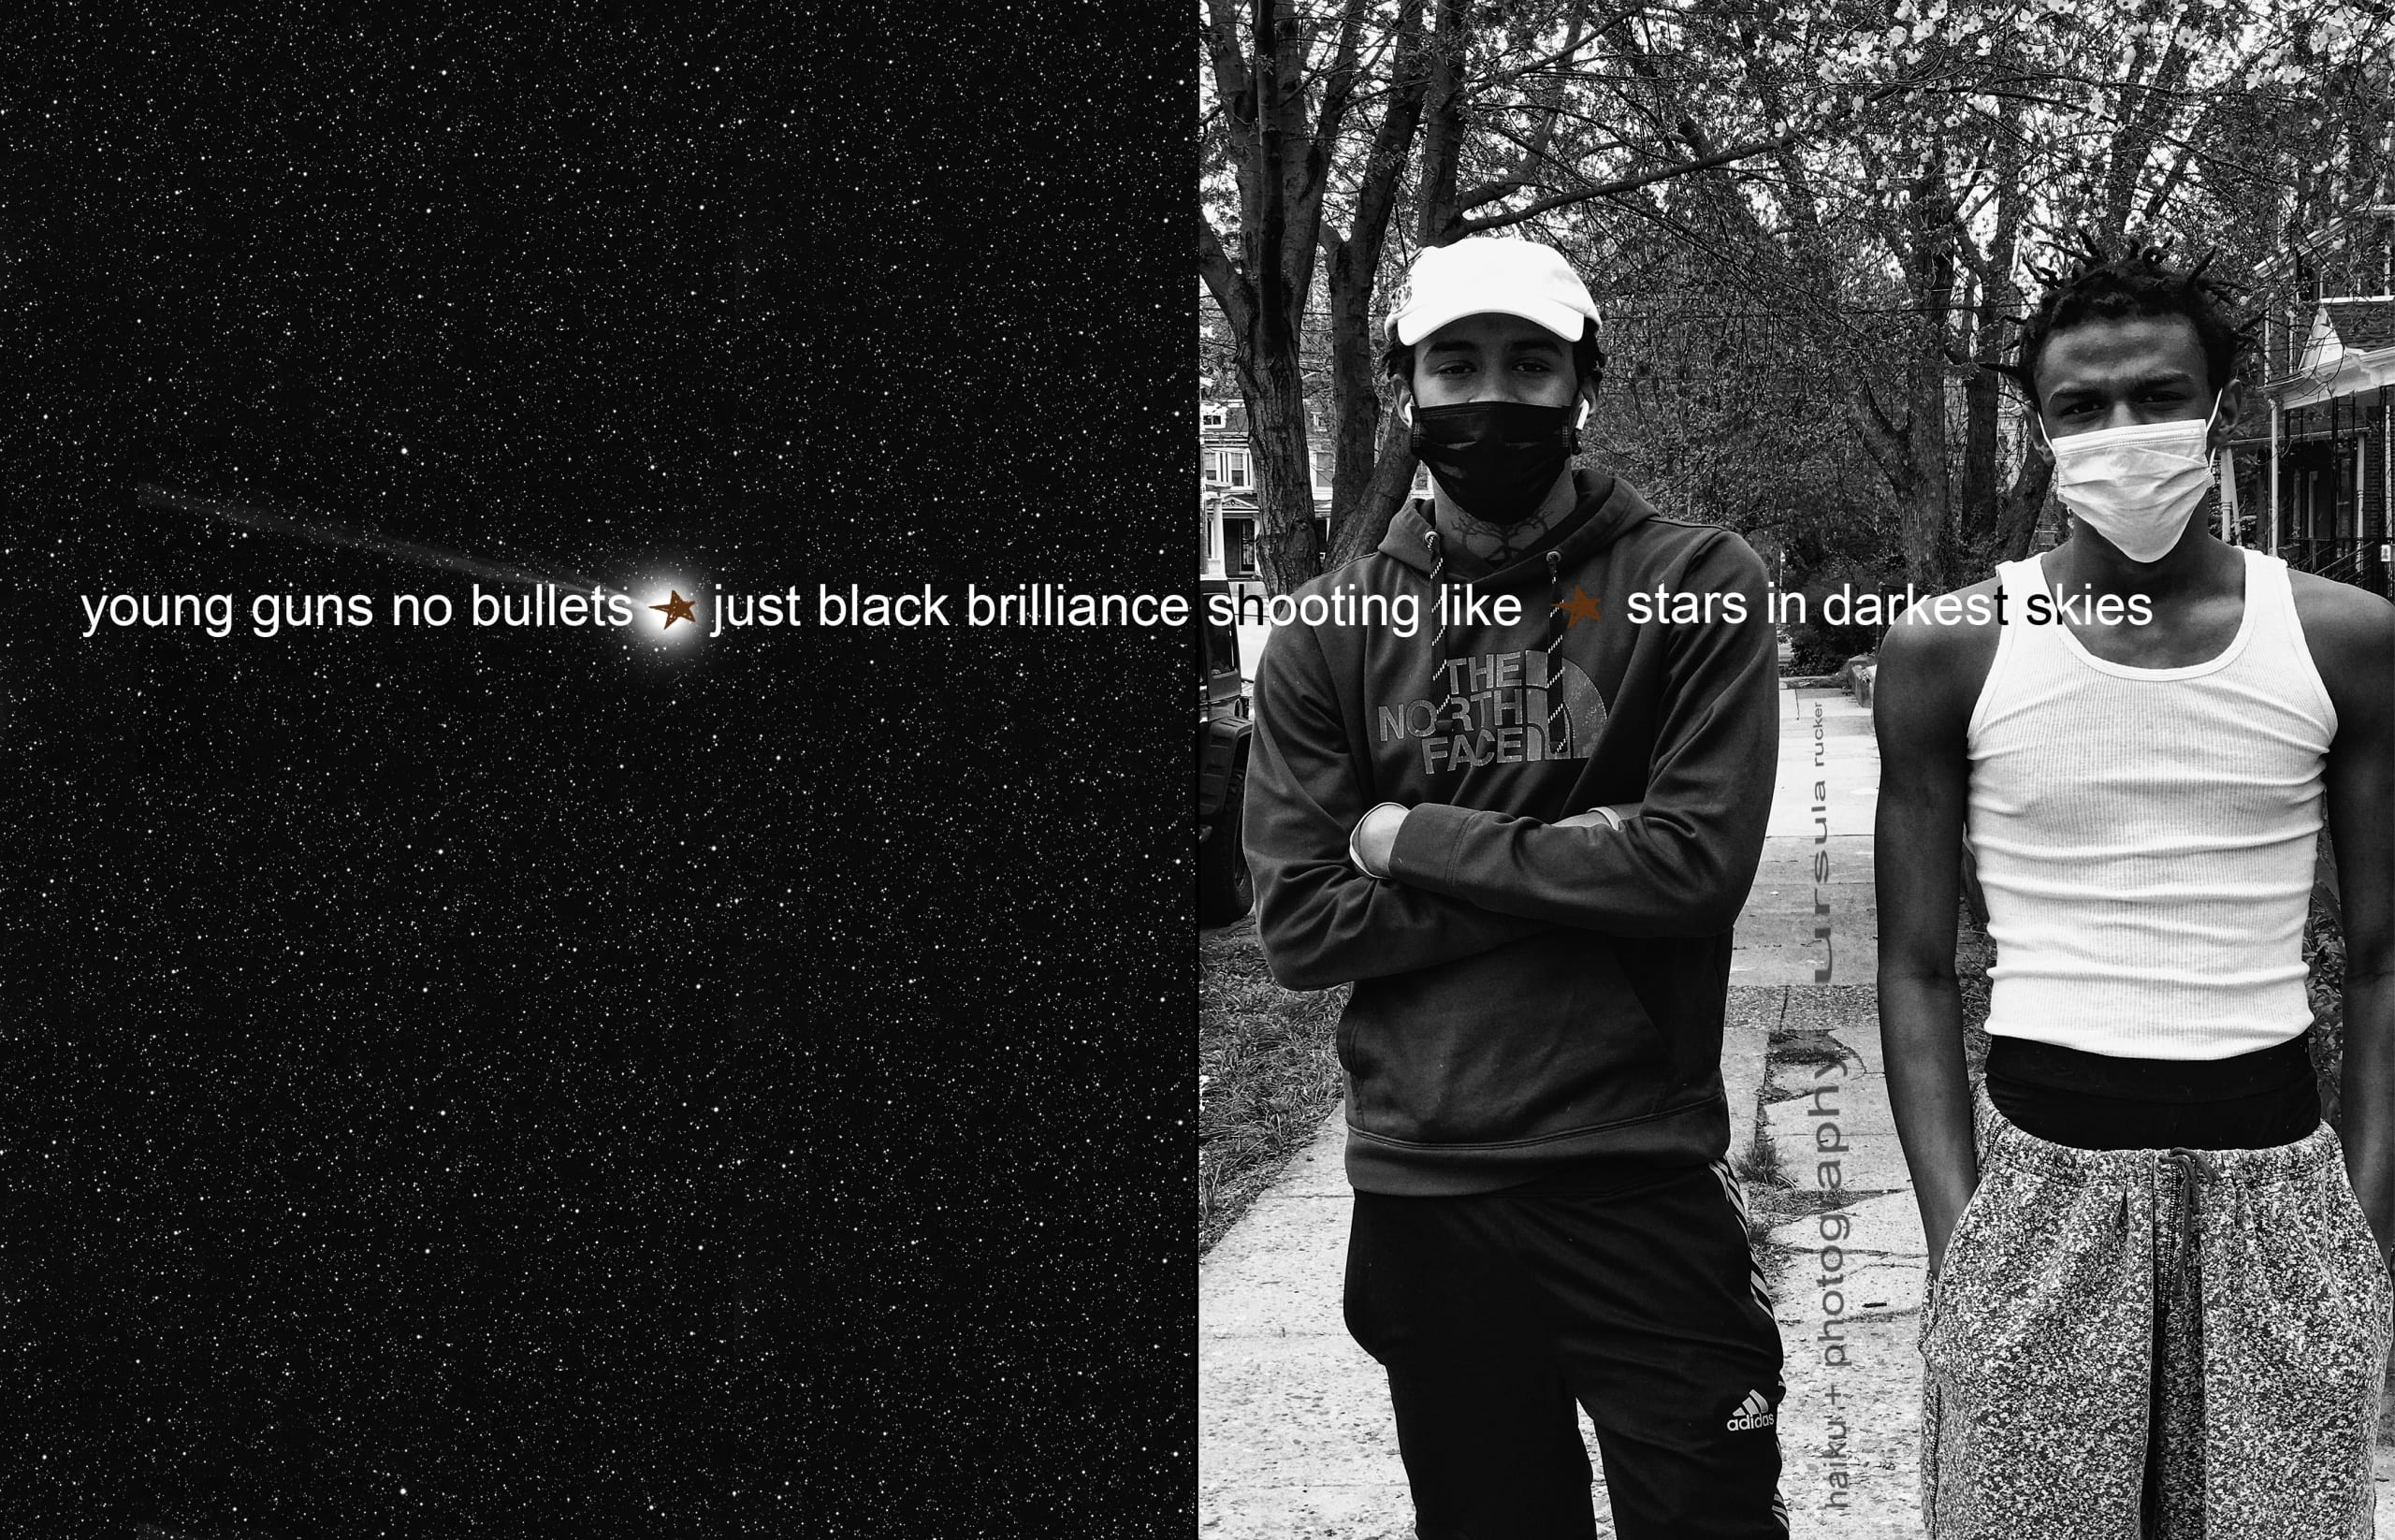 To the left, a polarized image of stars in the night sky; the right shows two beautiful, young Black men, 18 and 16 years old, each looking into the camera and standing on a sidewalk, on a block in the historical Germantown neighborhood in Philadelphia; the man on the left wears a hoodie, while the on on the right wears a white ribbed tank; both wear face masks